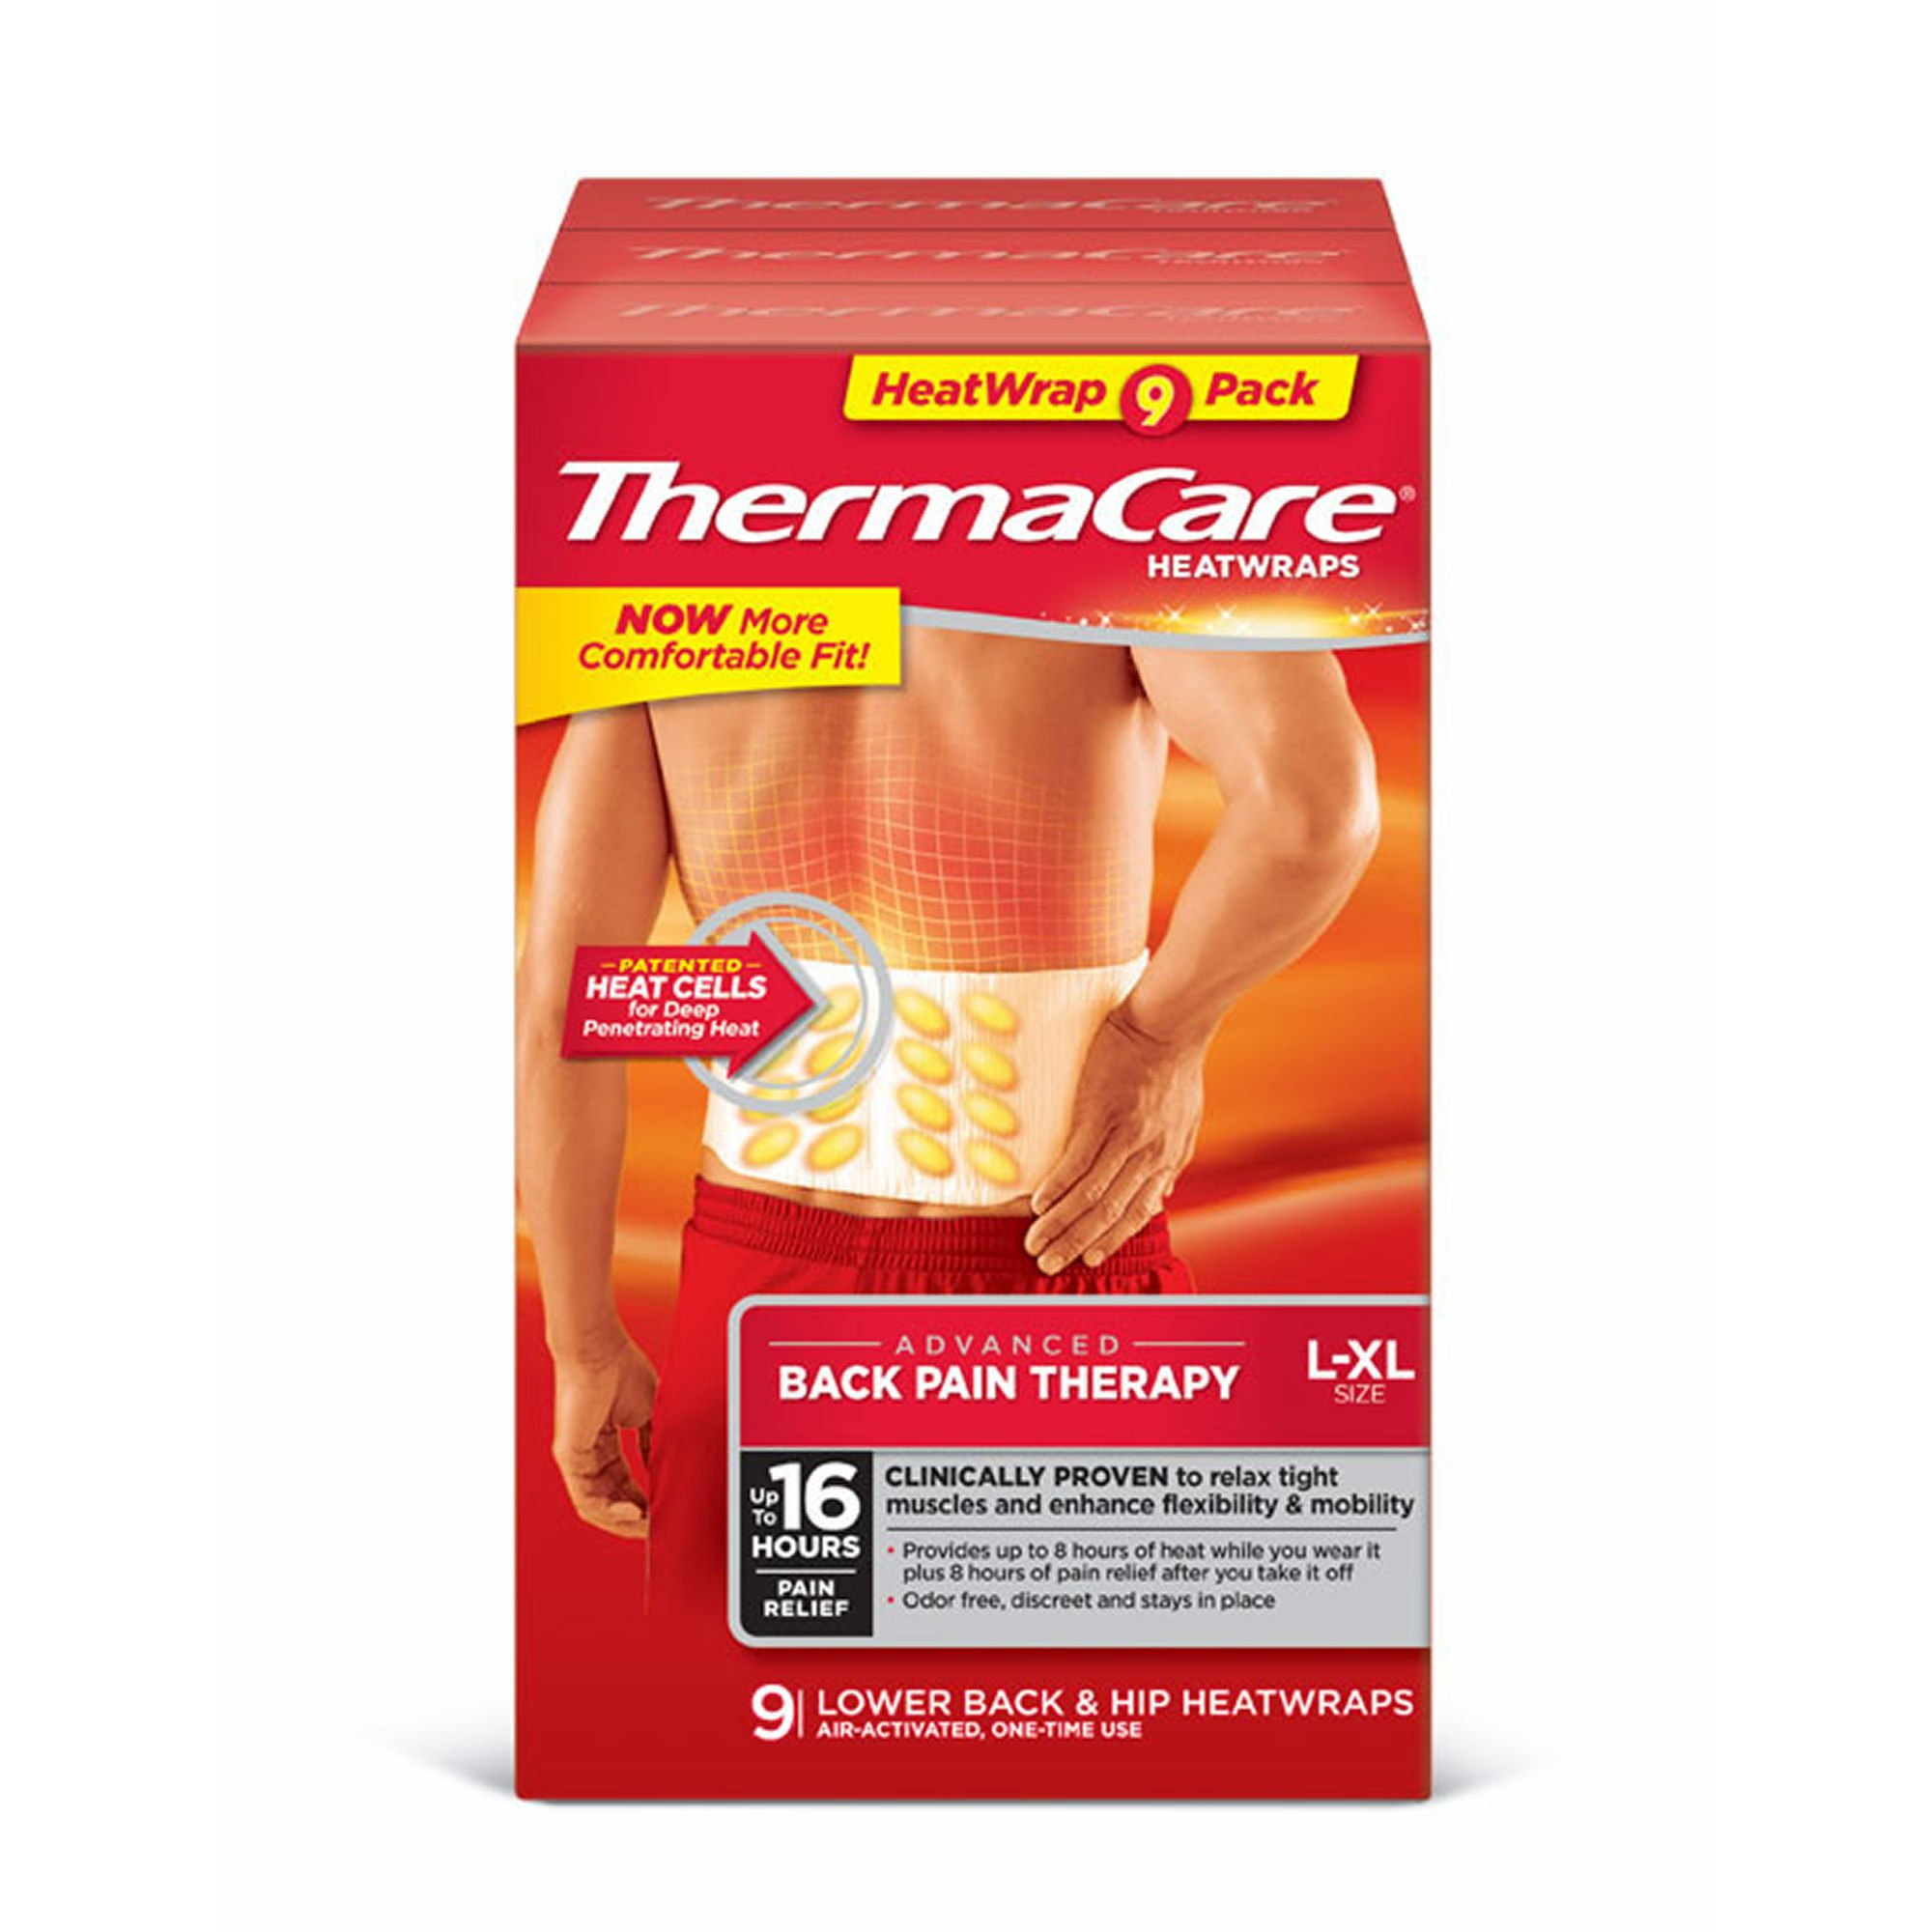 ThermaCare Lower Back and Hip Heat Wraps, 9 ct. (pack of 6)